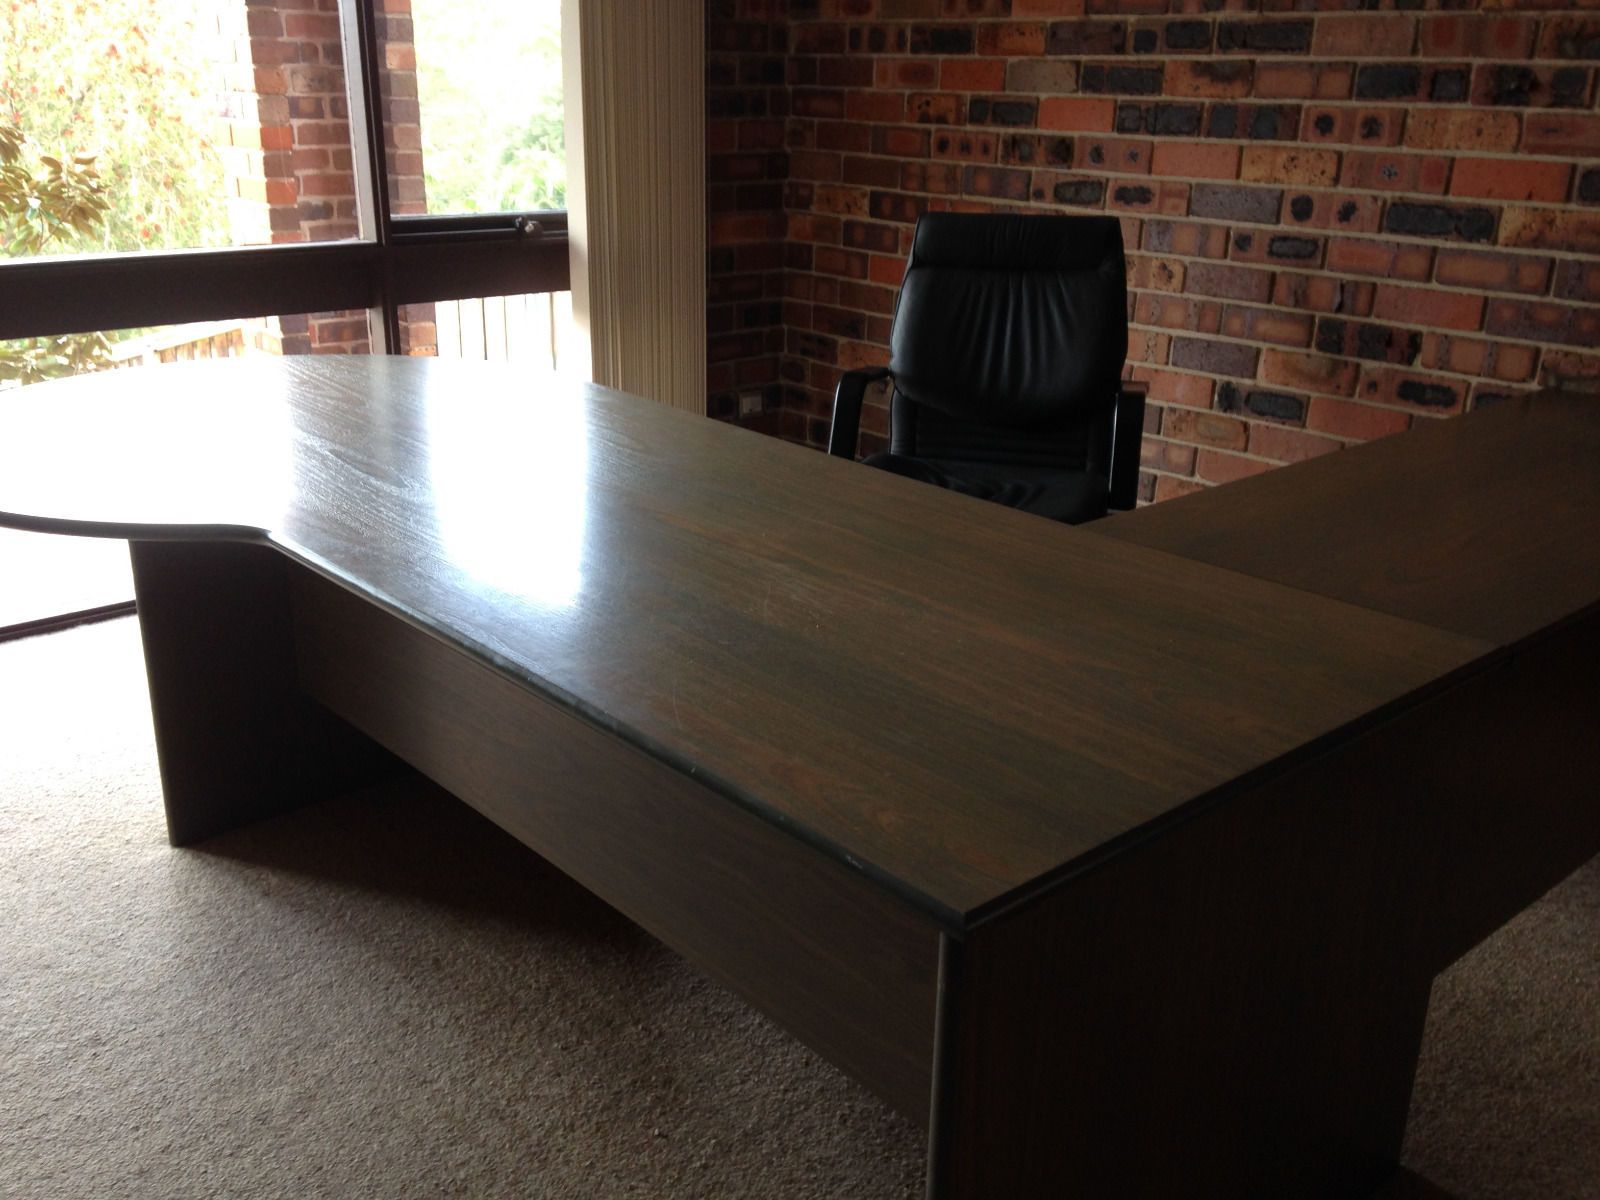 Executive office table with glass top a fabulous executive desk in ryde nsw  ebay  desks  pinterest